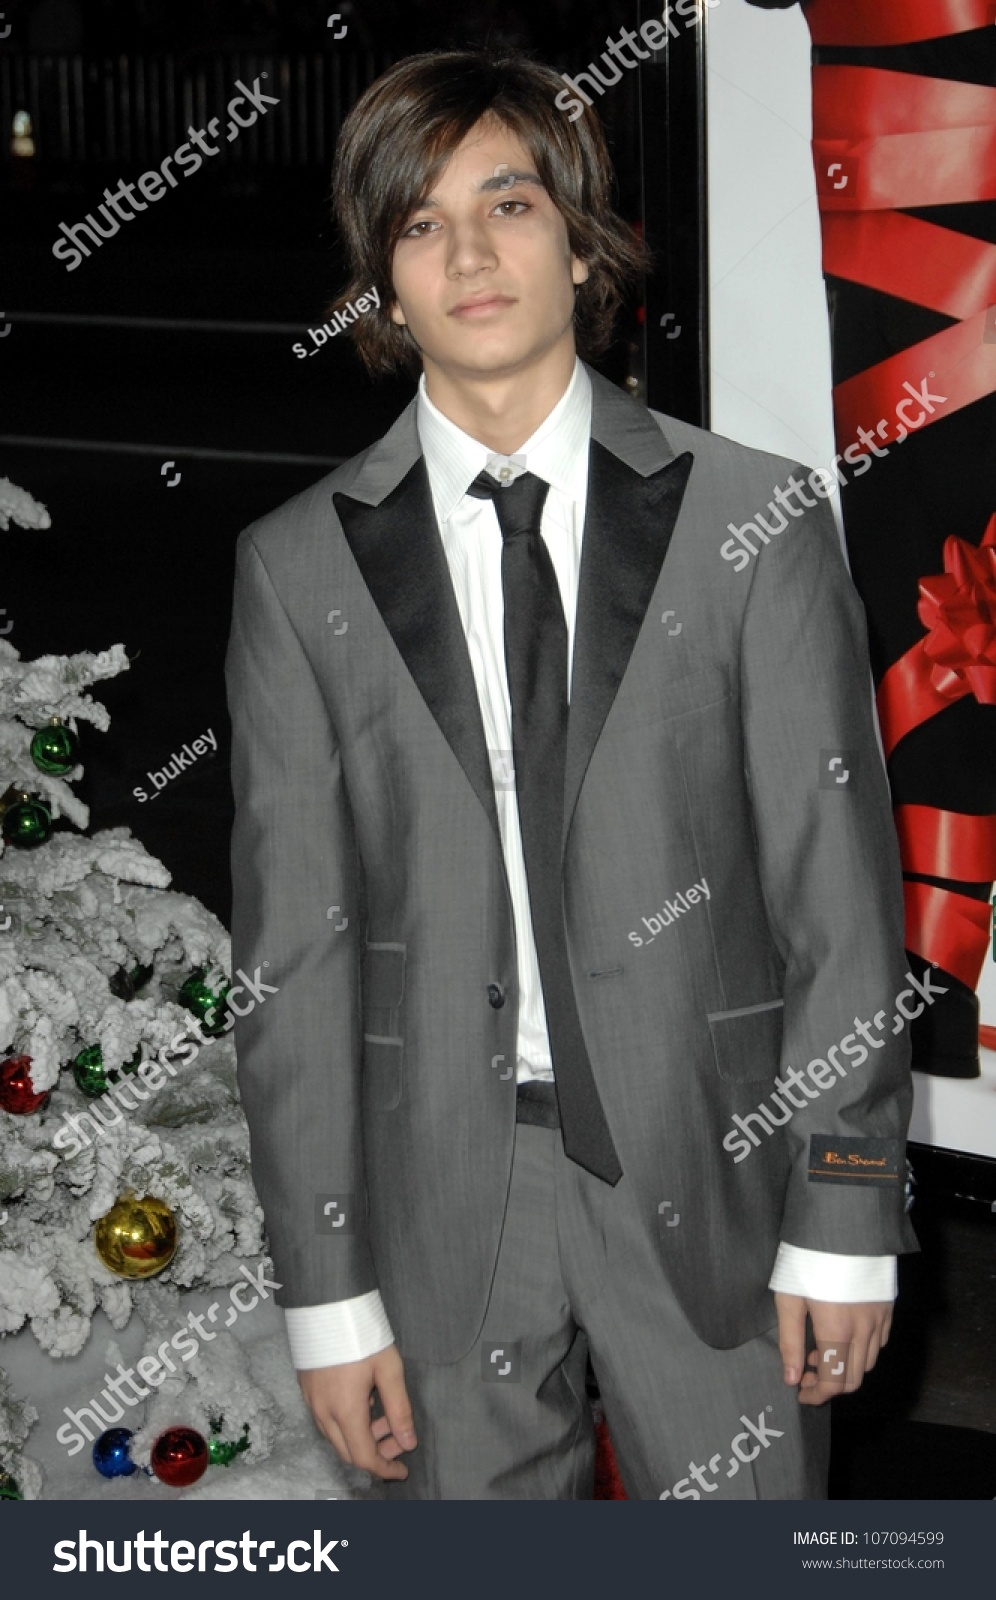 Taylor Boggan World Premiere Four Christmases Stock Photo ...  Taylor